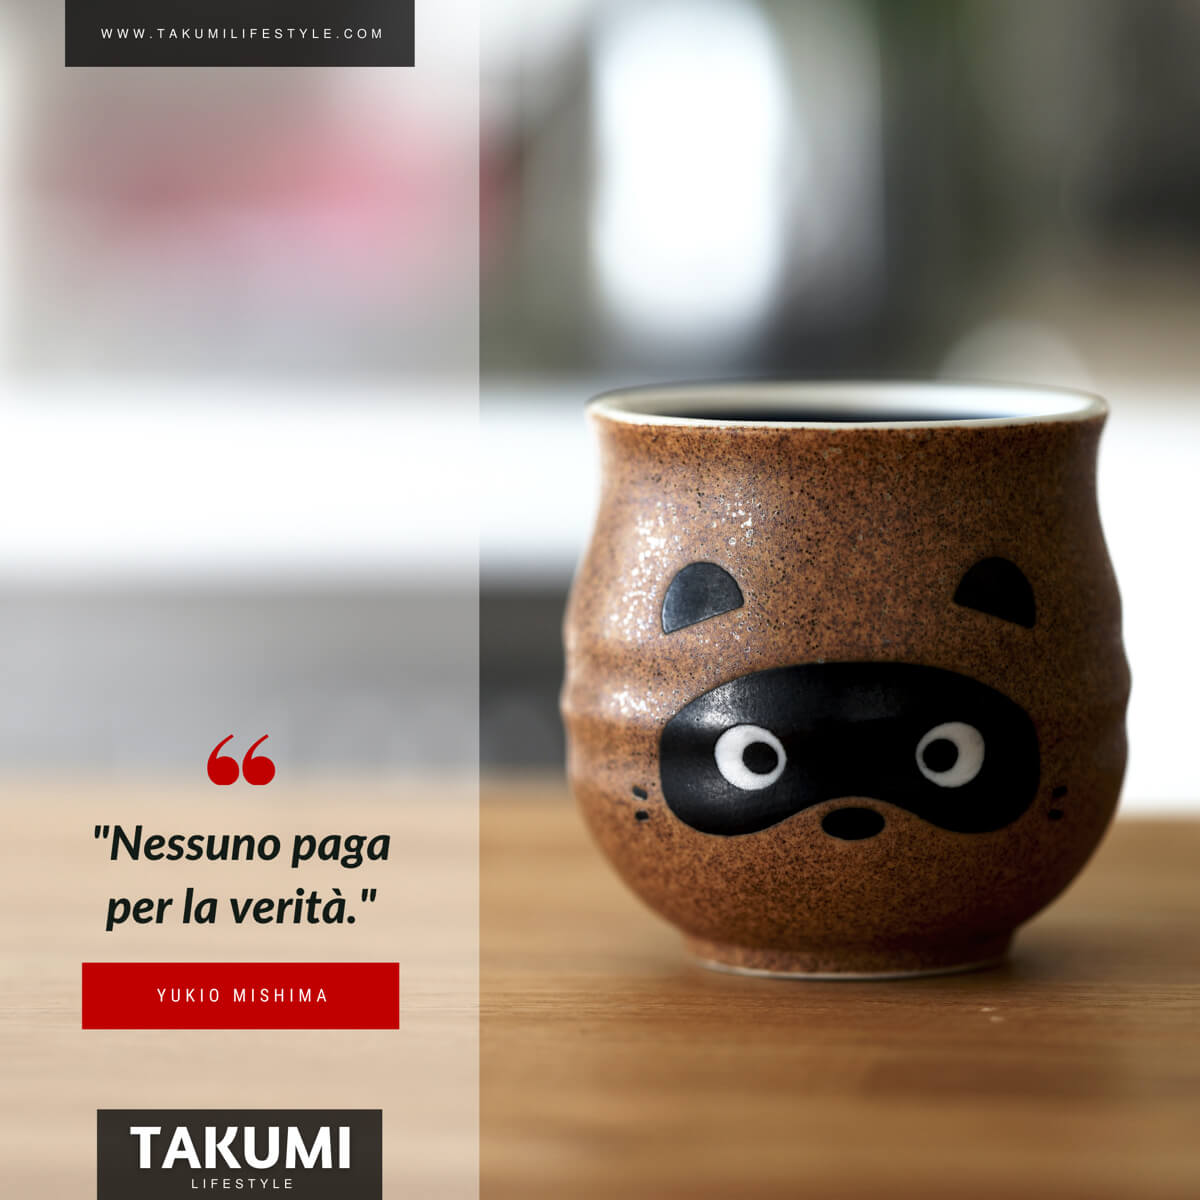 TAKUMI lifestyle | quote#12